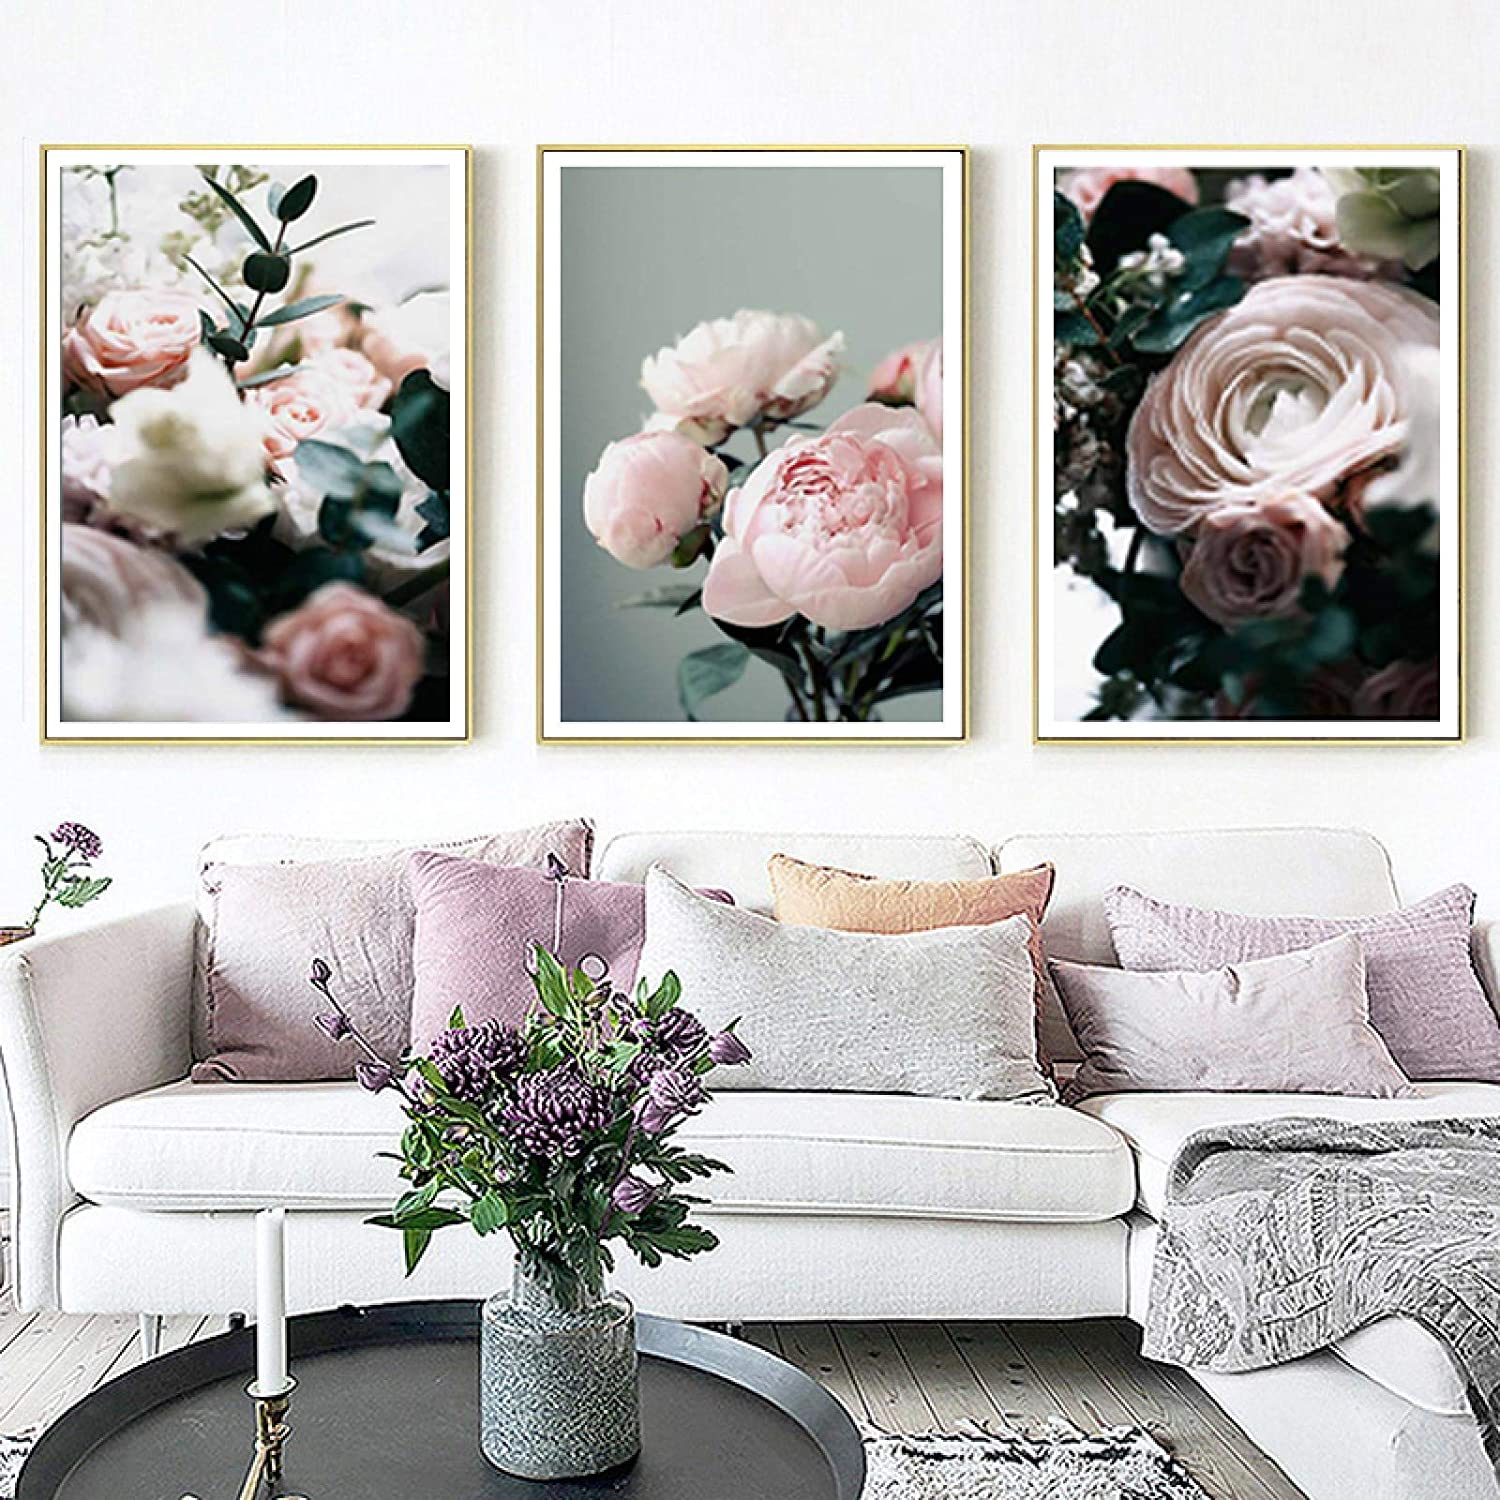 Ranking TOP20 Sunsightly Canvas Wall Art Modern Floral Peonies Painting Japan Maker New